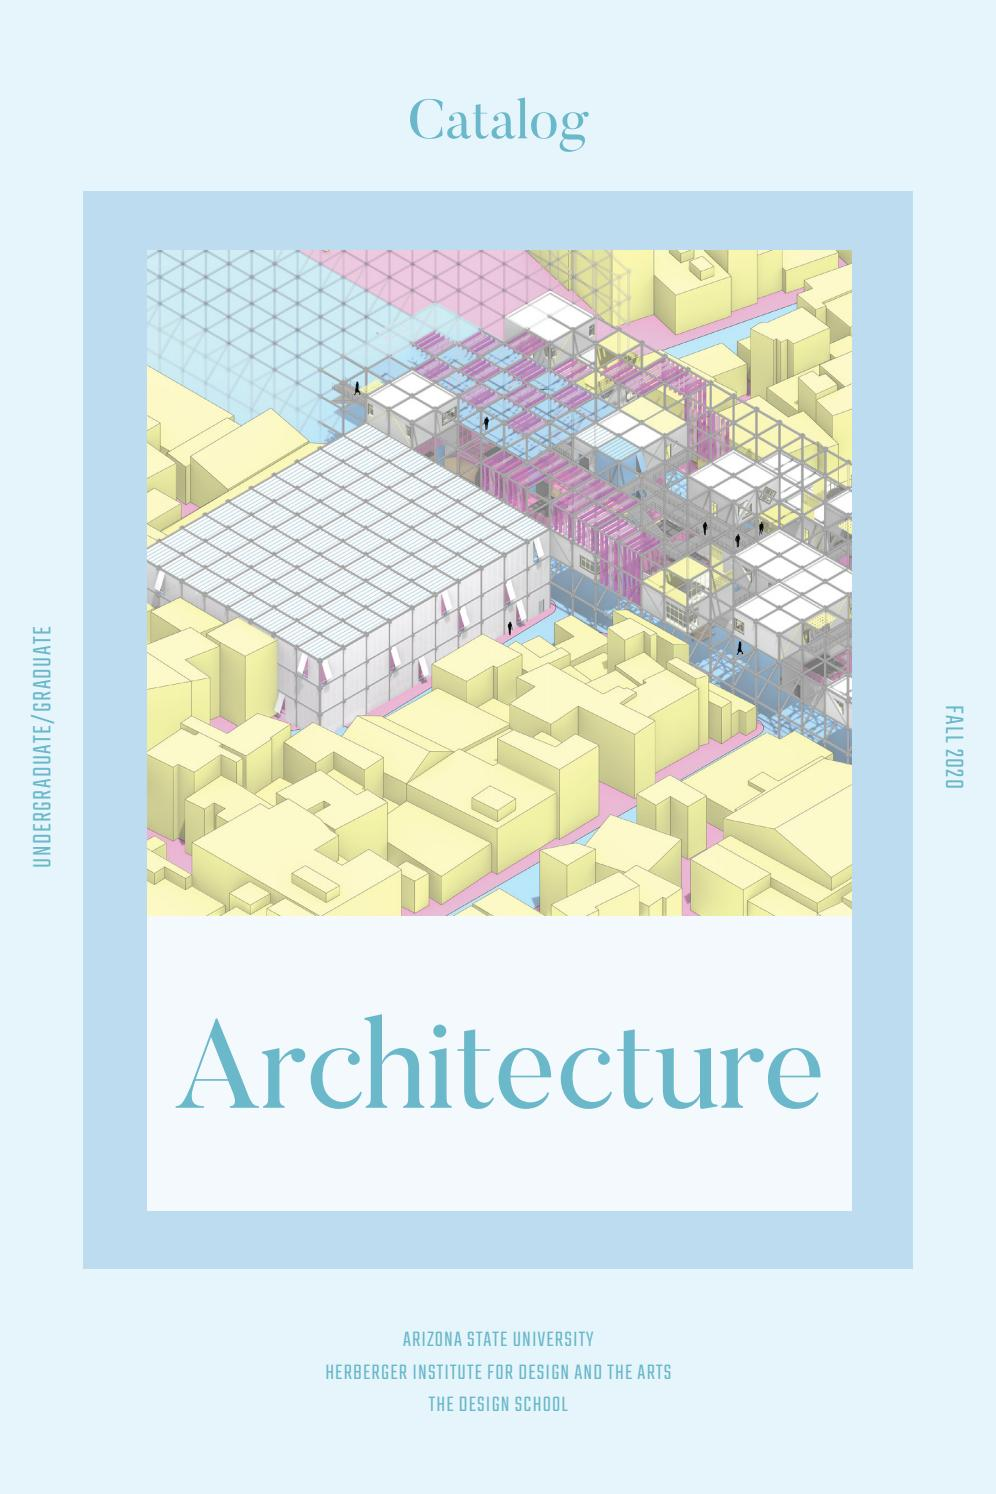 Architecture At Asu Fall 2020 Student Catalog By The Design School Asu Issuu